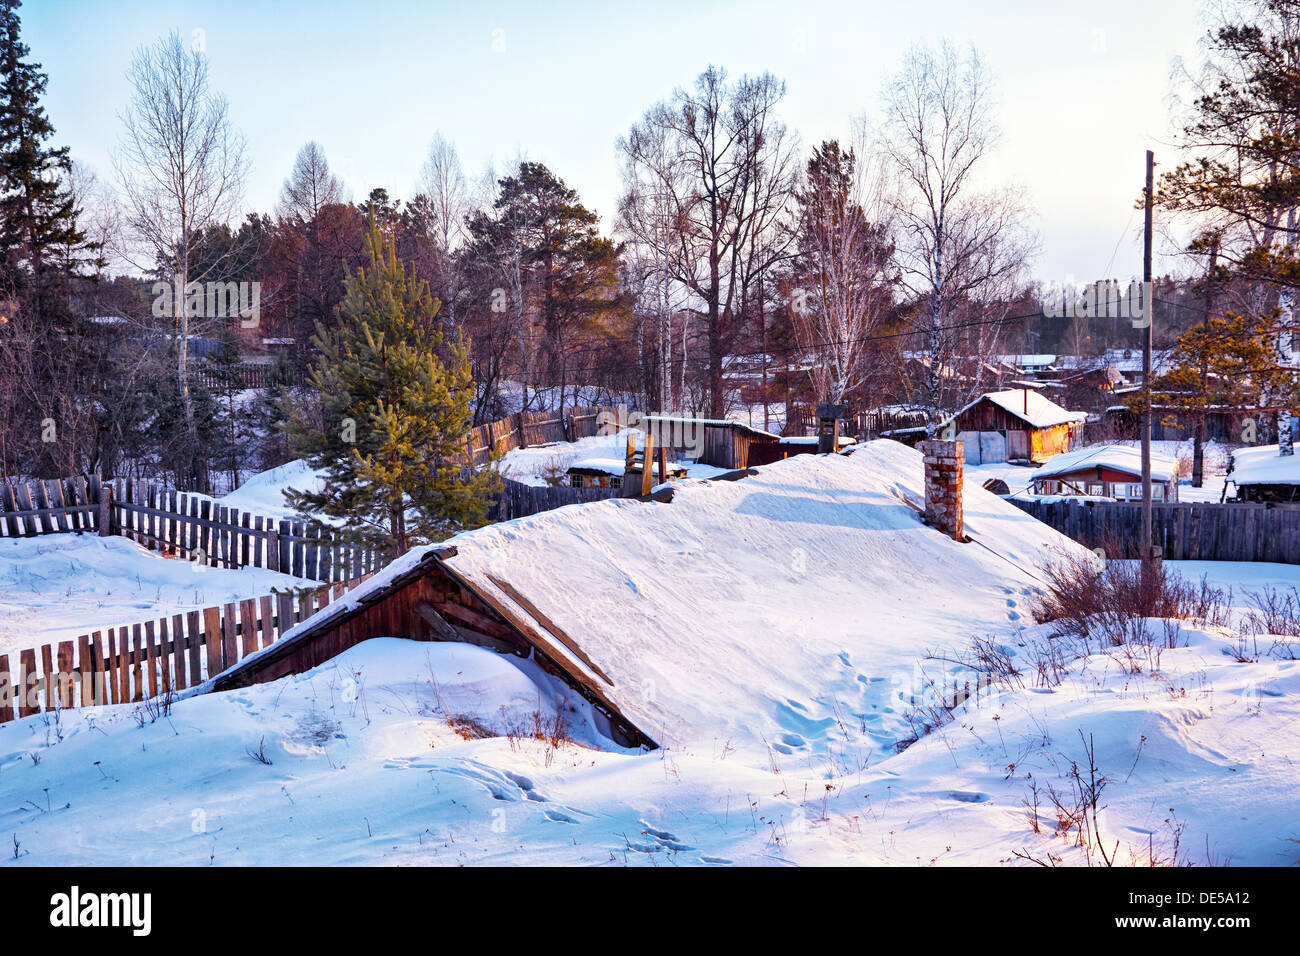 Siberian village at winter covered by snow at evening time - Stock Image